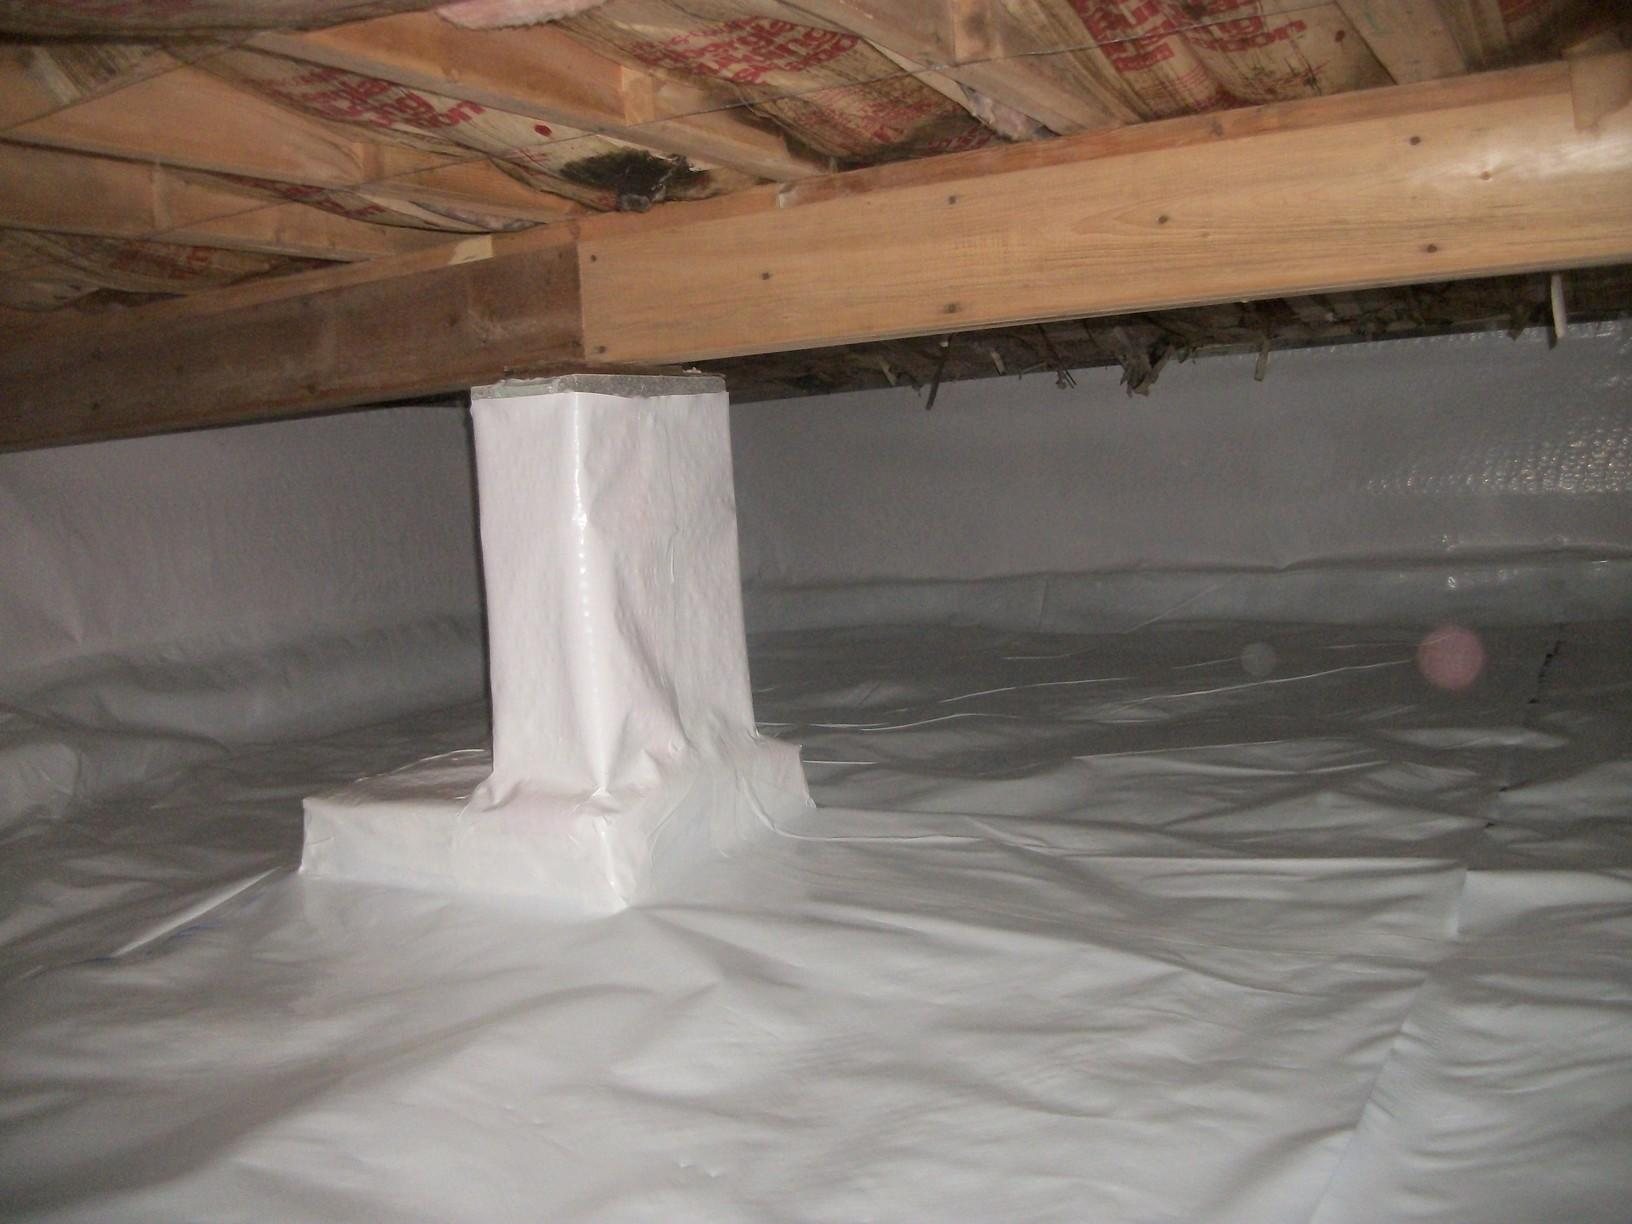 CleanSpace Crawl Space Vapor Barrier System